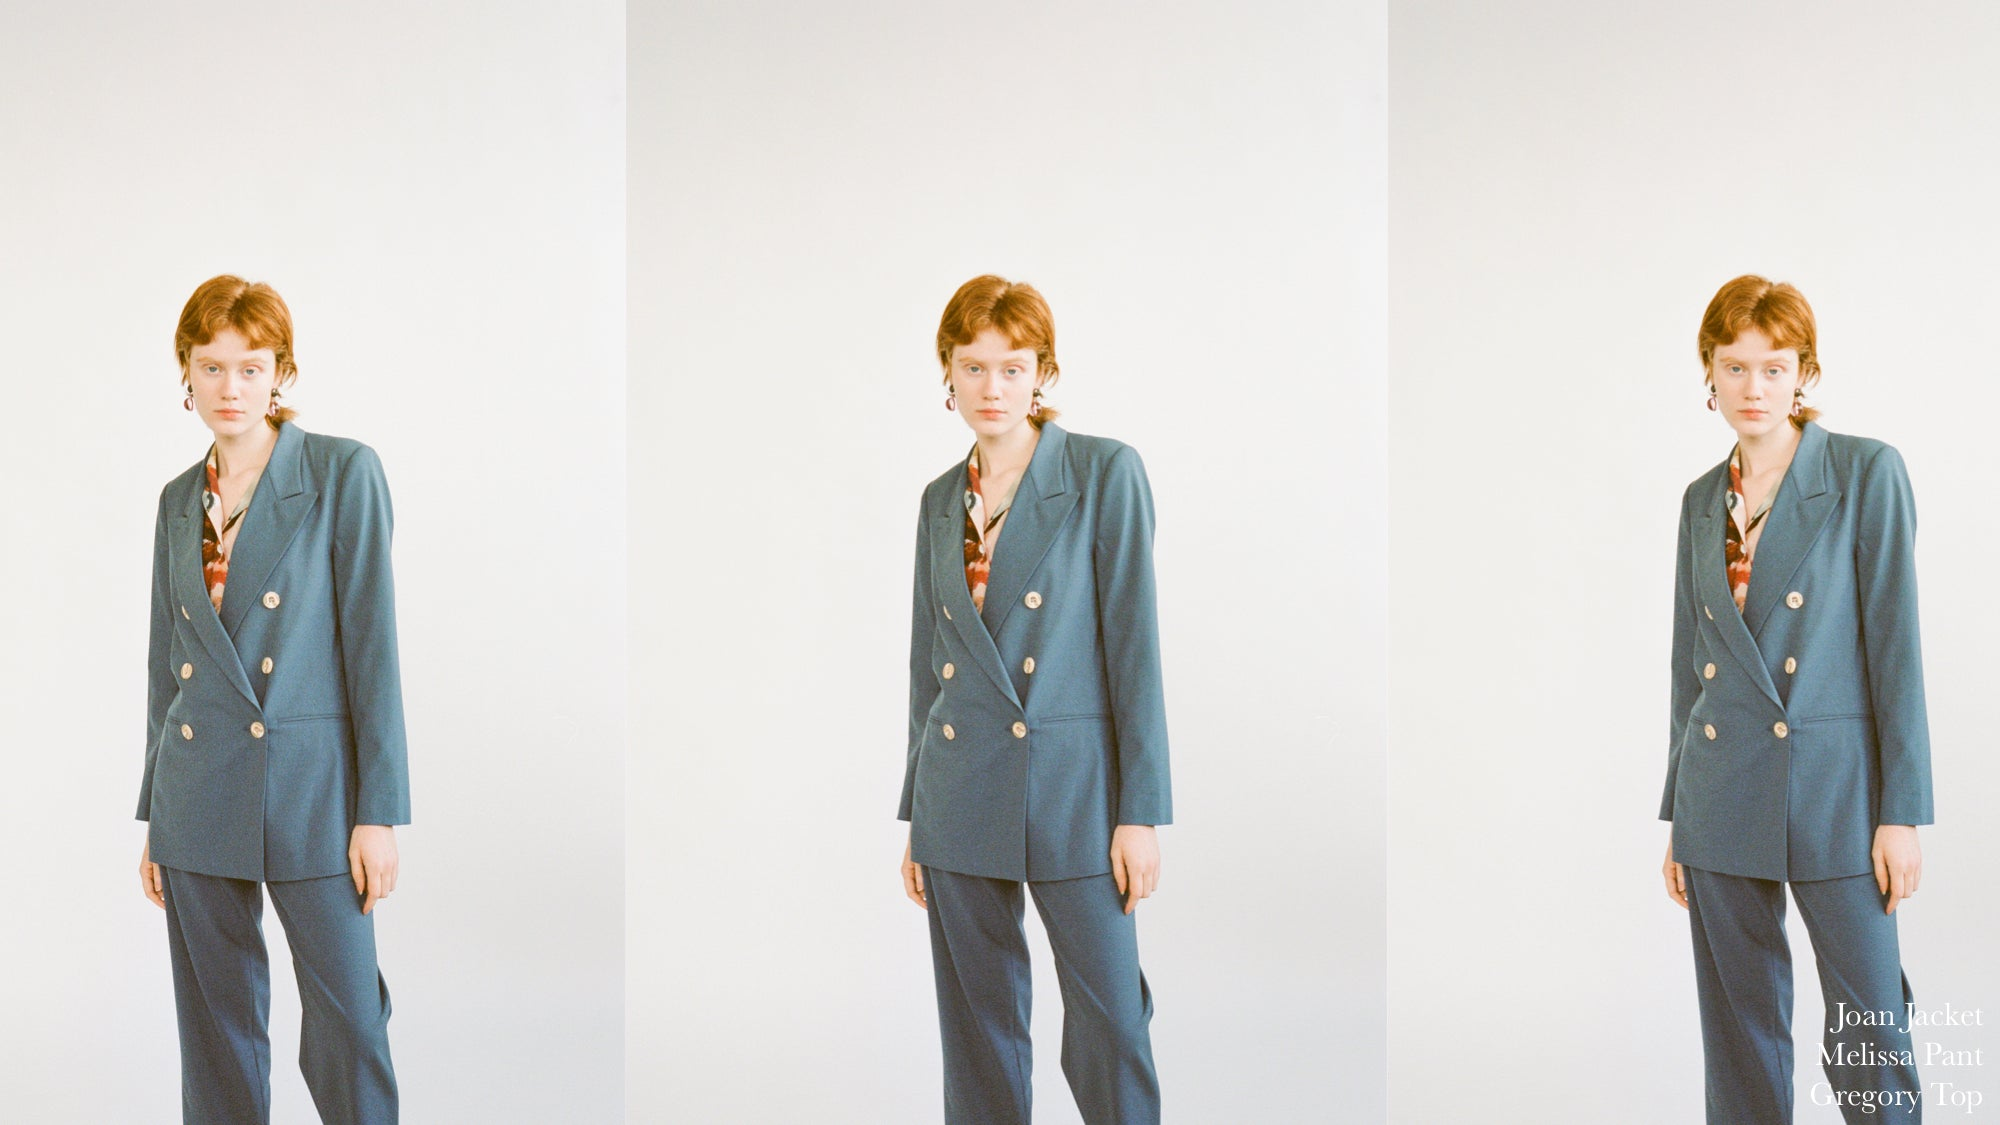 WRAY PF20 Lookbook: Joan Jacket and Melissa Pant, the perfect suit